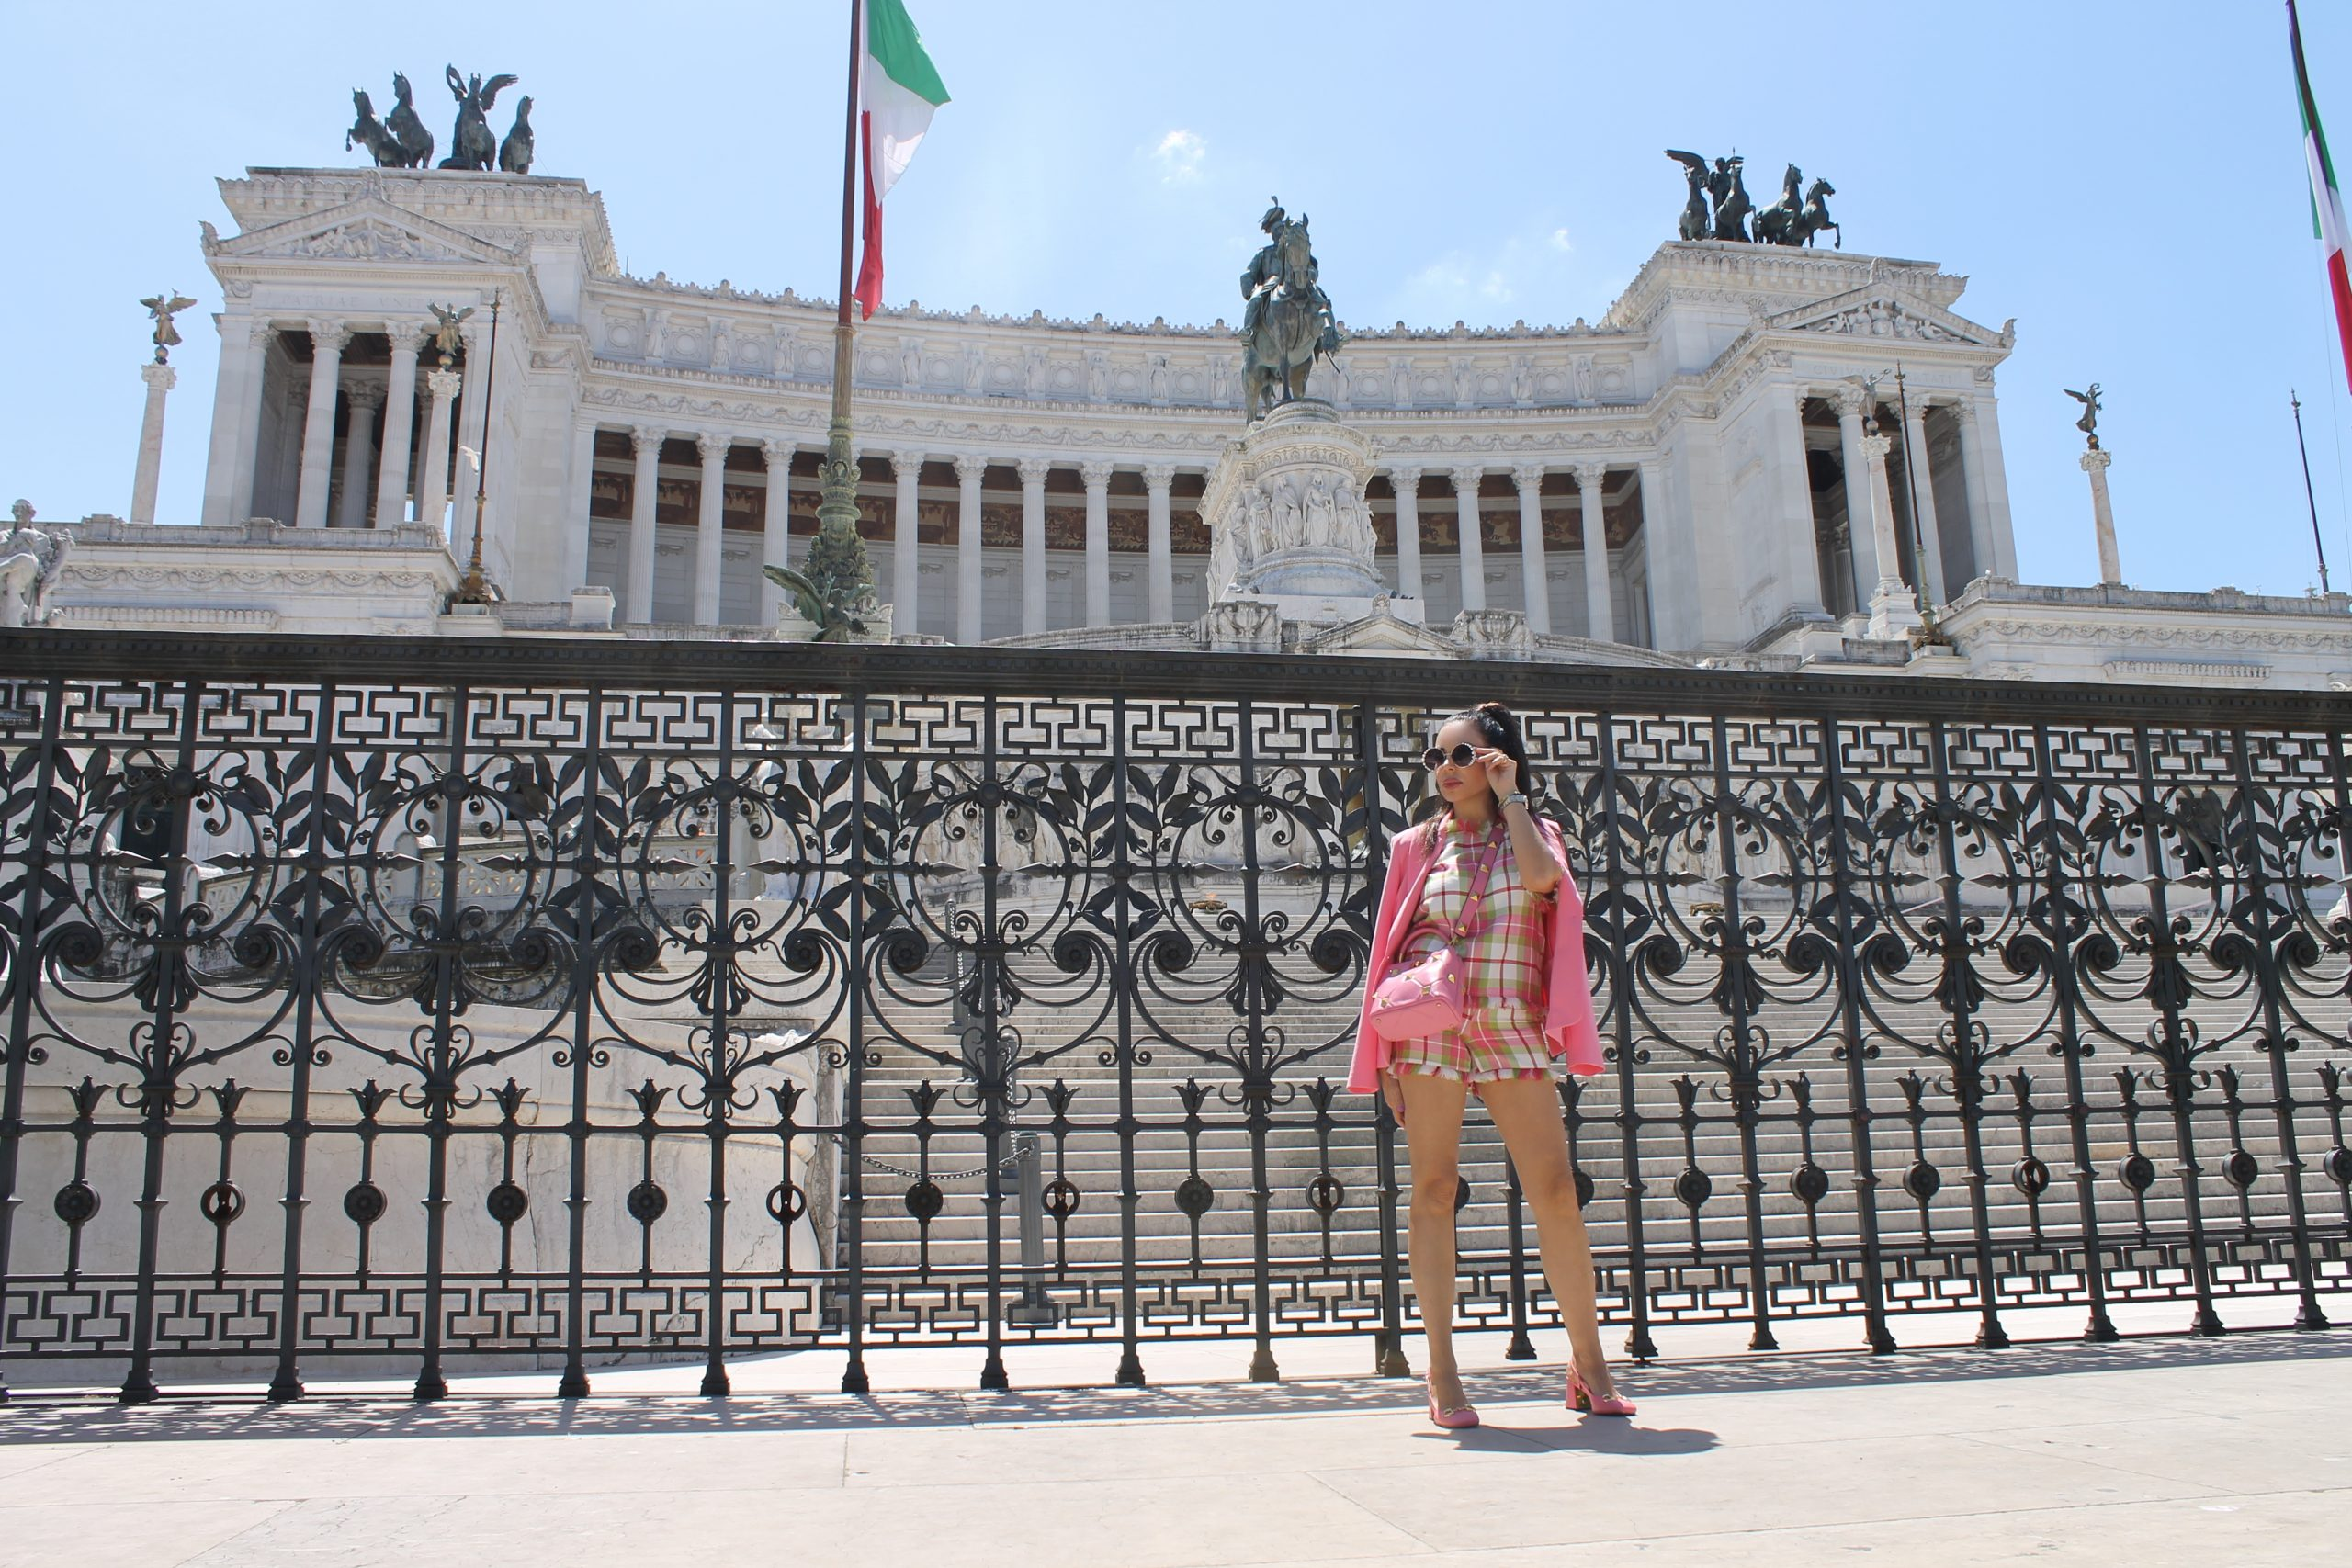 Pink Look Vacanze Romane Spring Outfit Ideas Gucci Shoes Valentino Bag Paola Lauretano